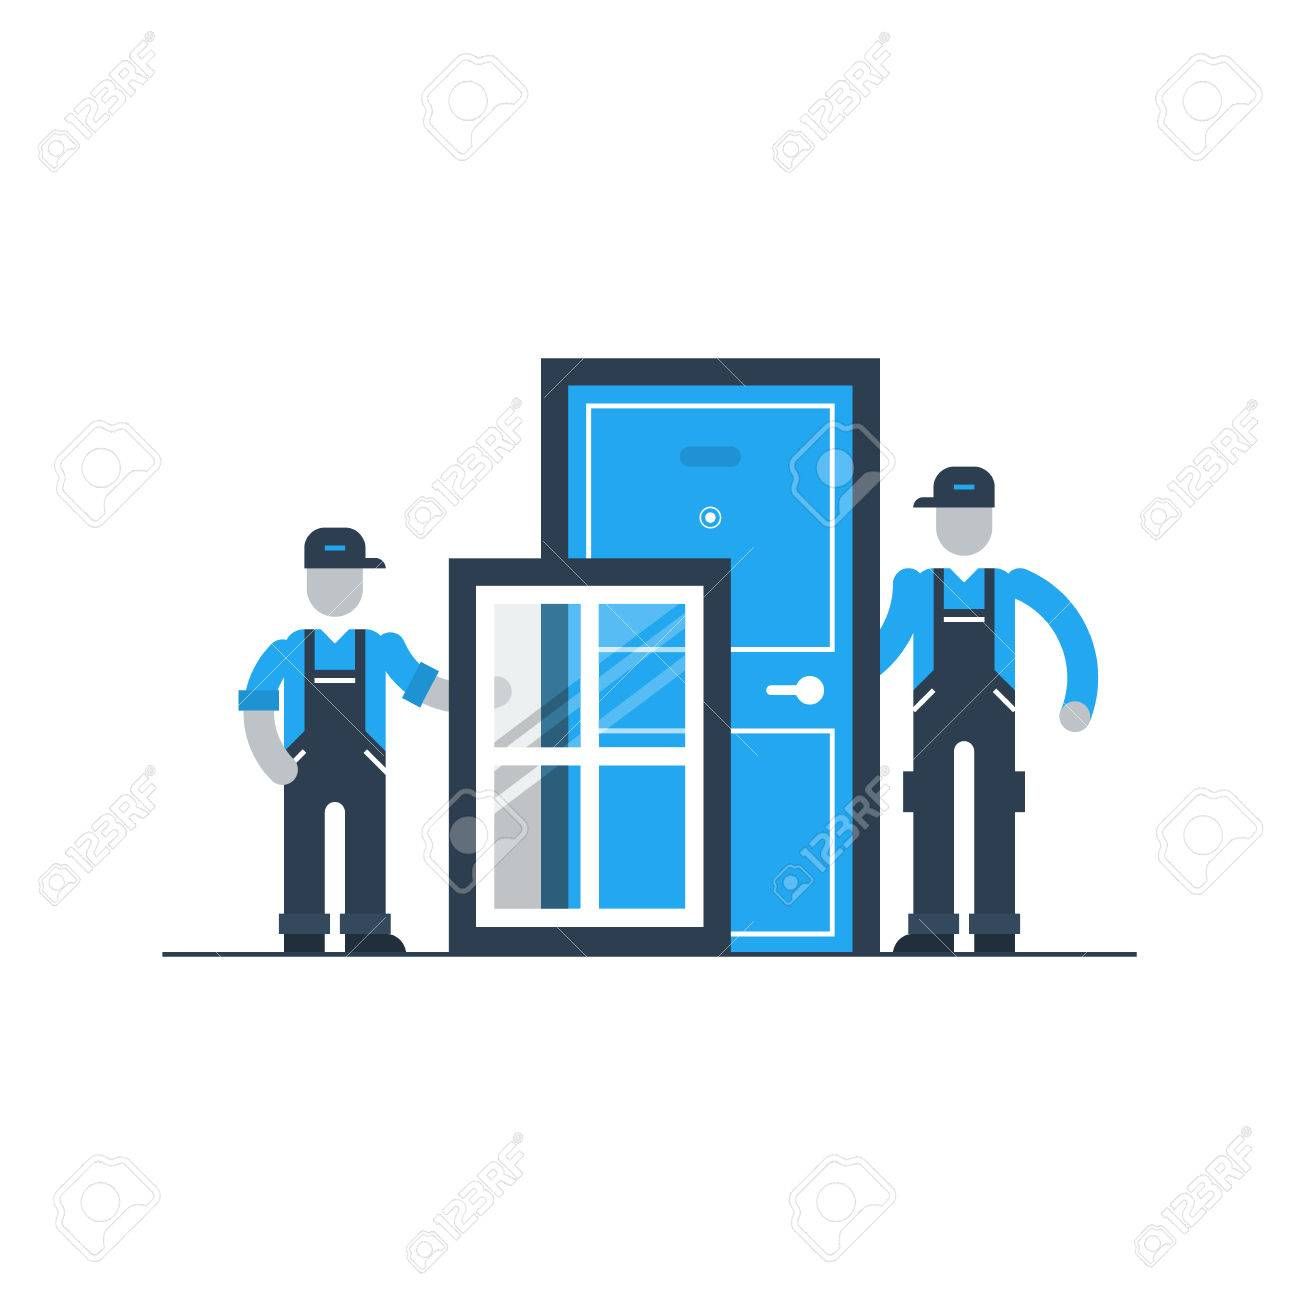 Windows and doors installment services - 53250670